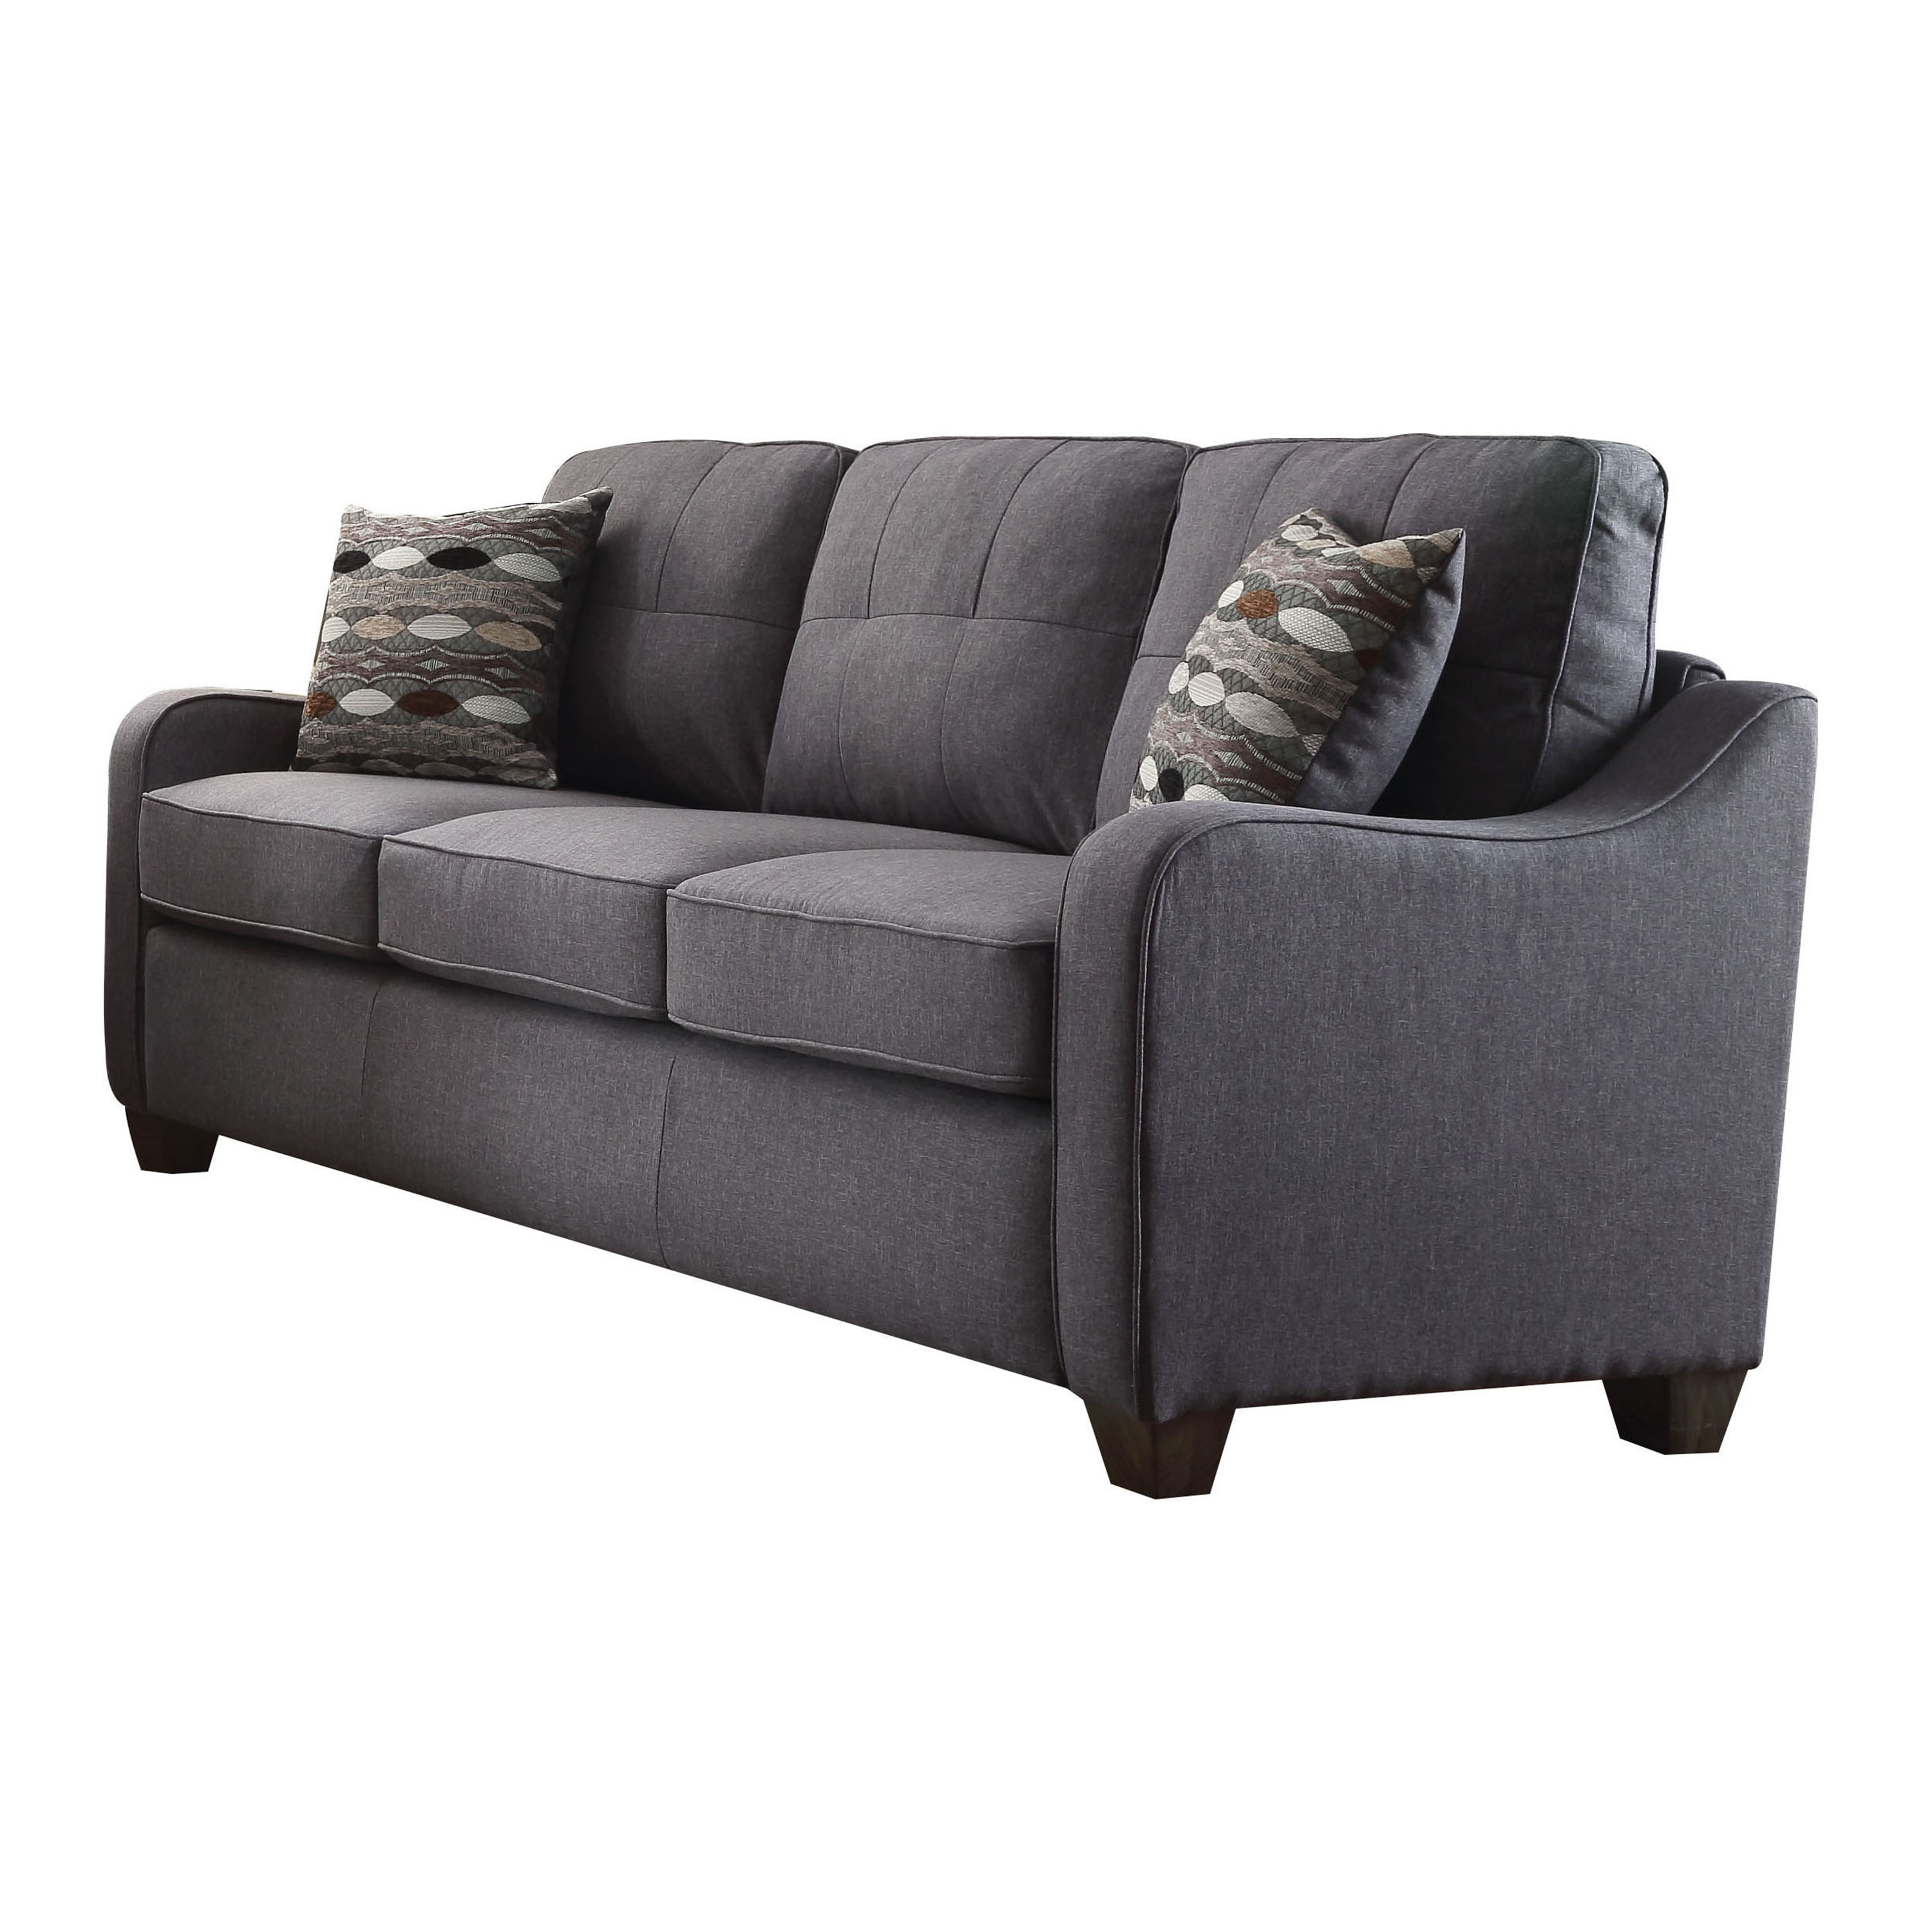 ACME Cleavon II Sofa with 2 Pillows in Gray Linen Upholstery by Acme Furniture